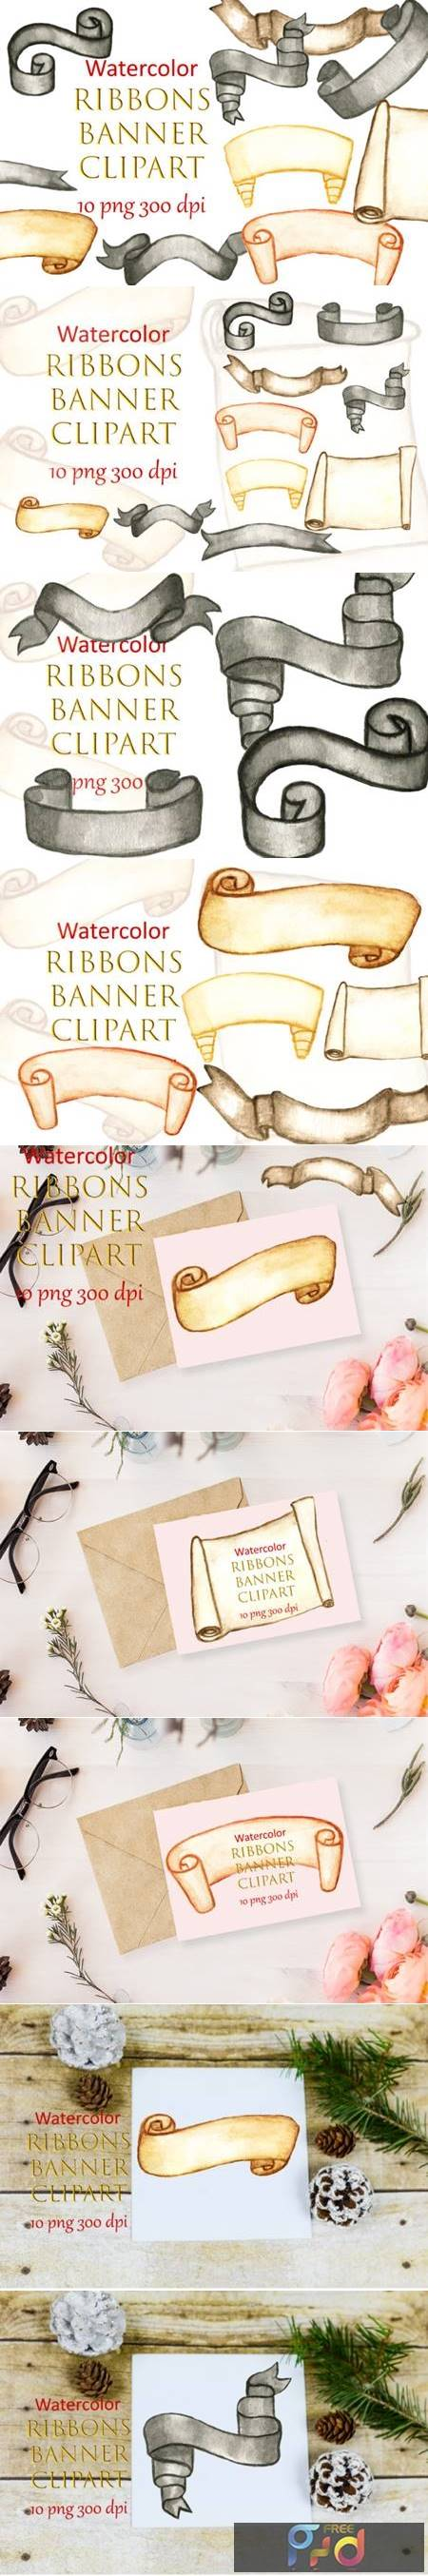 Watercolor Clipart Ribbons Banner Winter 6995952 1